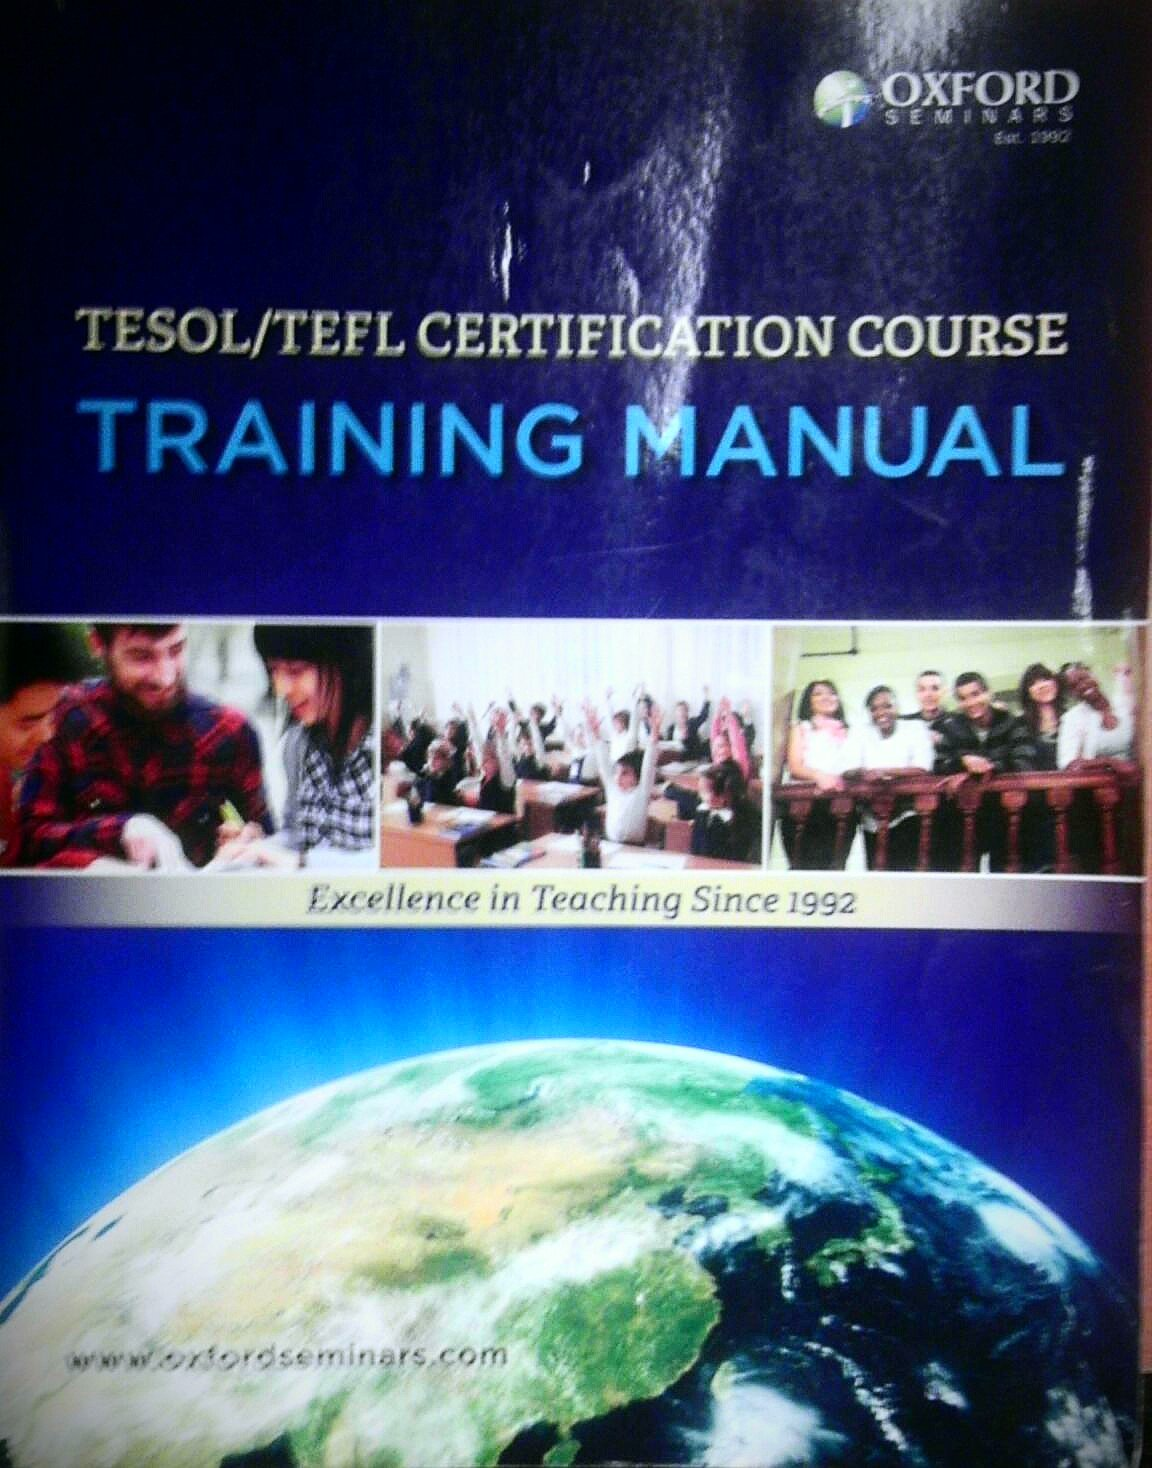 Tesoltefl Certification Course Training Manual Oxford University